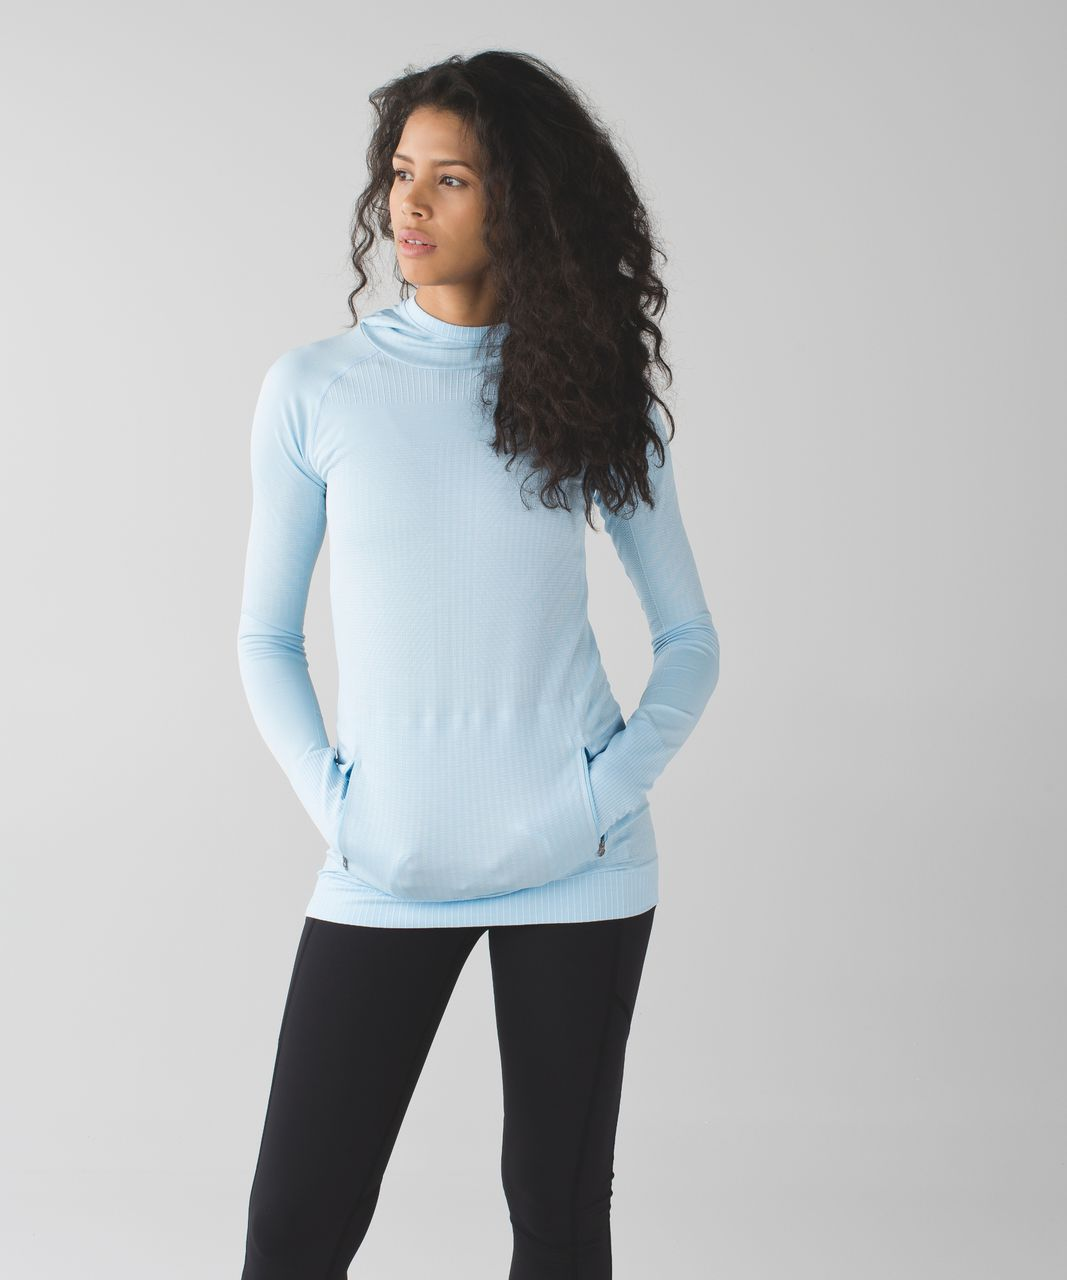 Lululemon Rest Less Hoodie - Heathered Caspian Blue